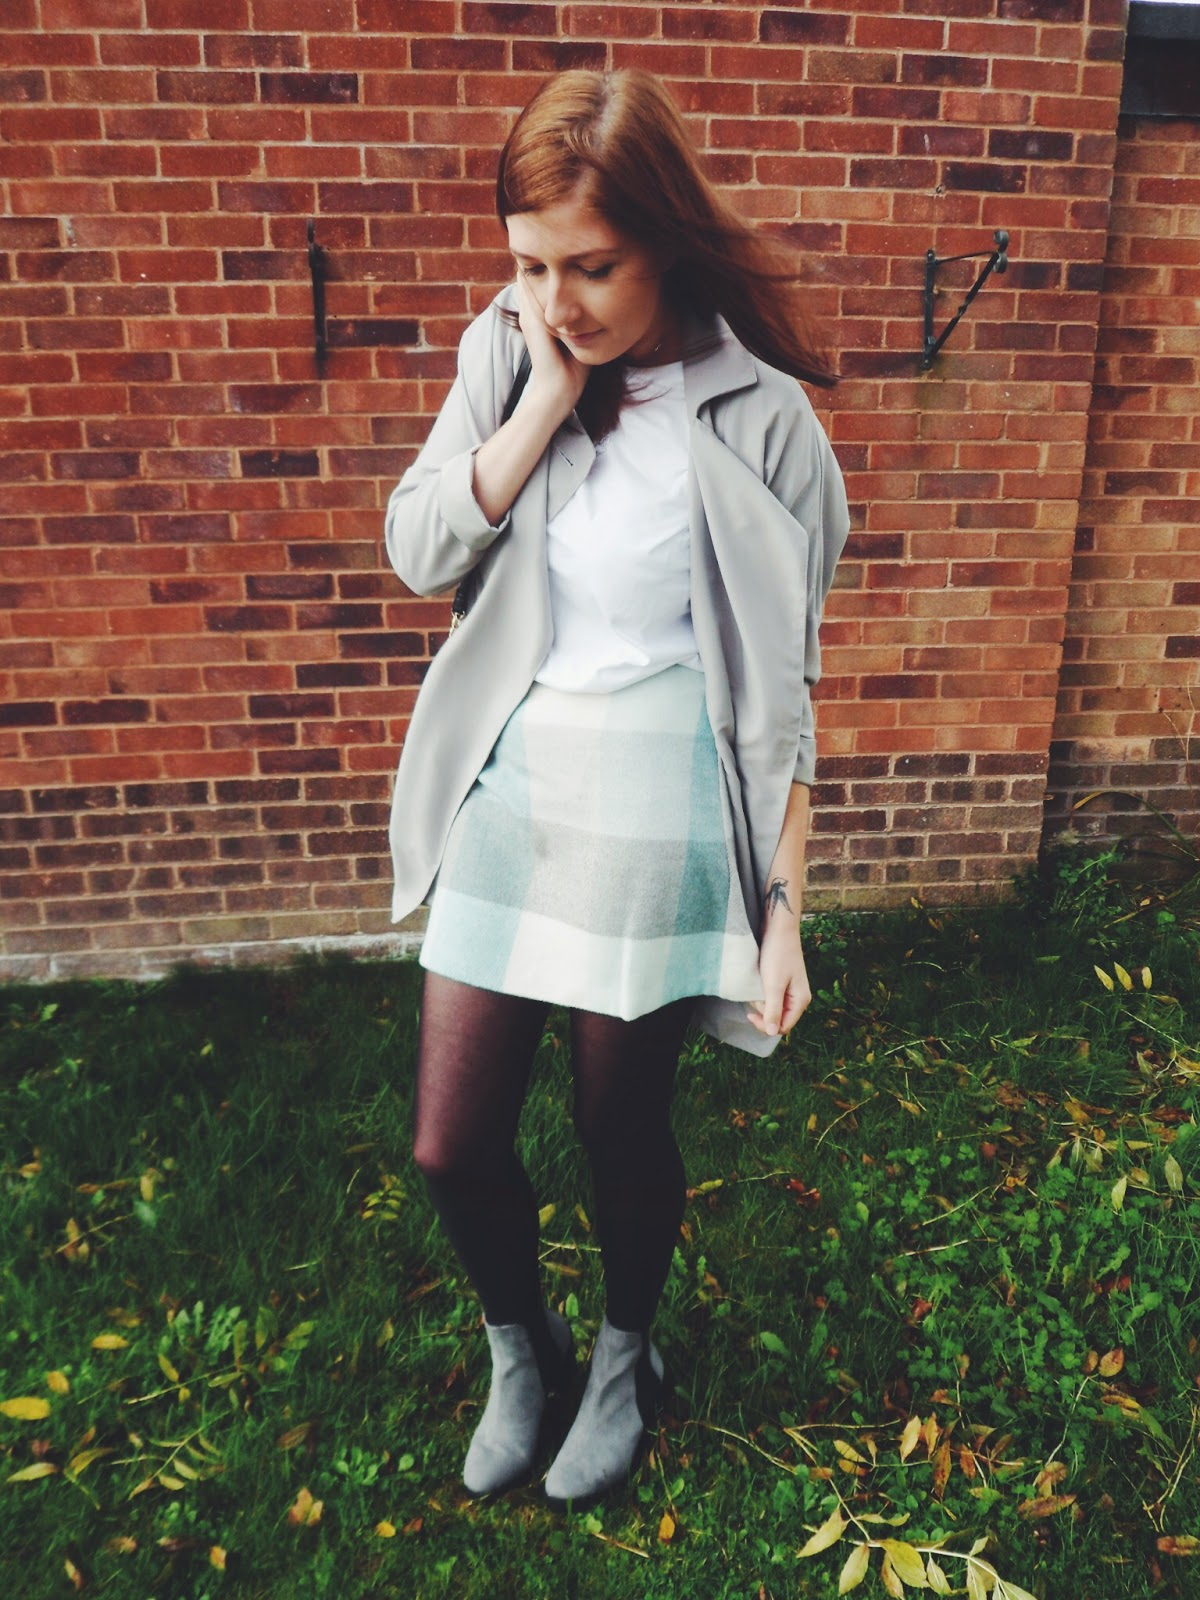 asseenonme, fbloggers, fblogger, fashion, fashionbloggers, fashionblogger, ootd, outfitoftheday, lotd, lookoftheday, primark, ASOS, ASDA, george at asda, autumnwinter2014, autumn, winter, trenchcoat